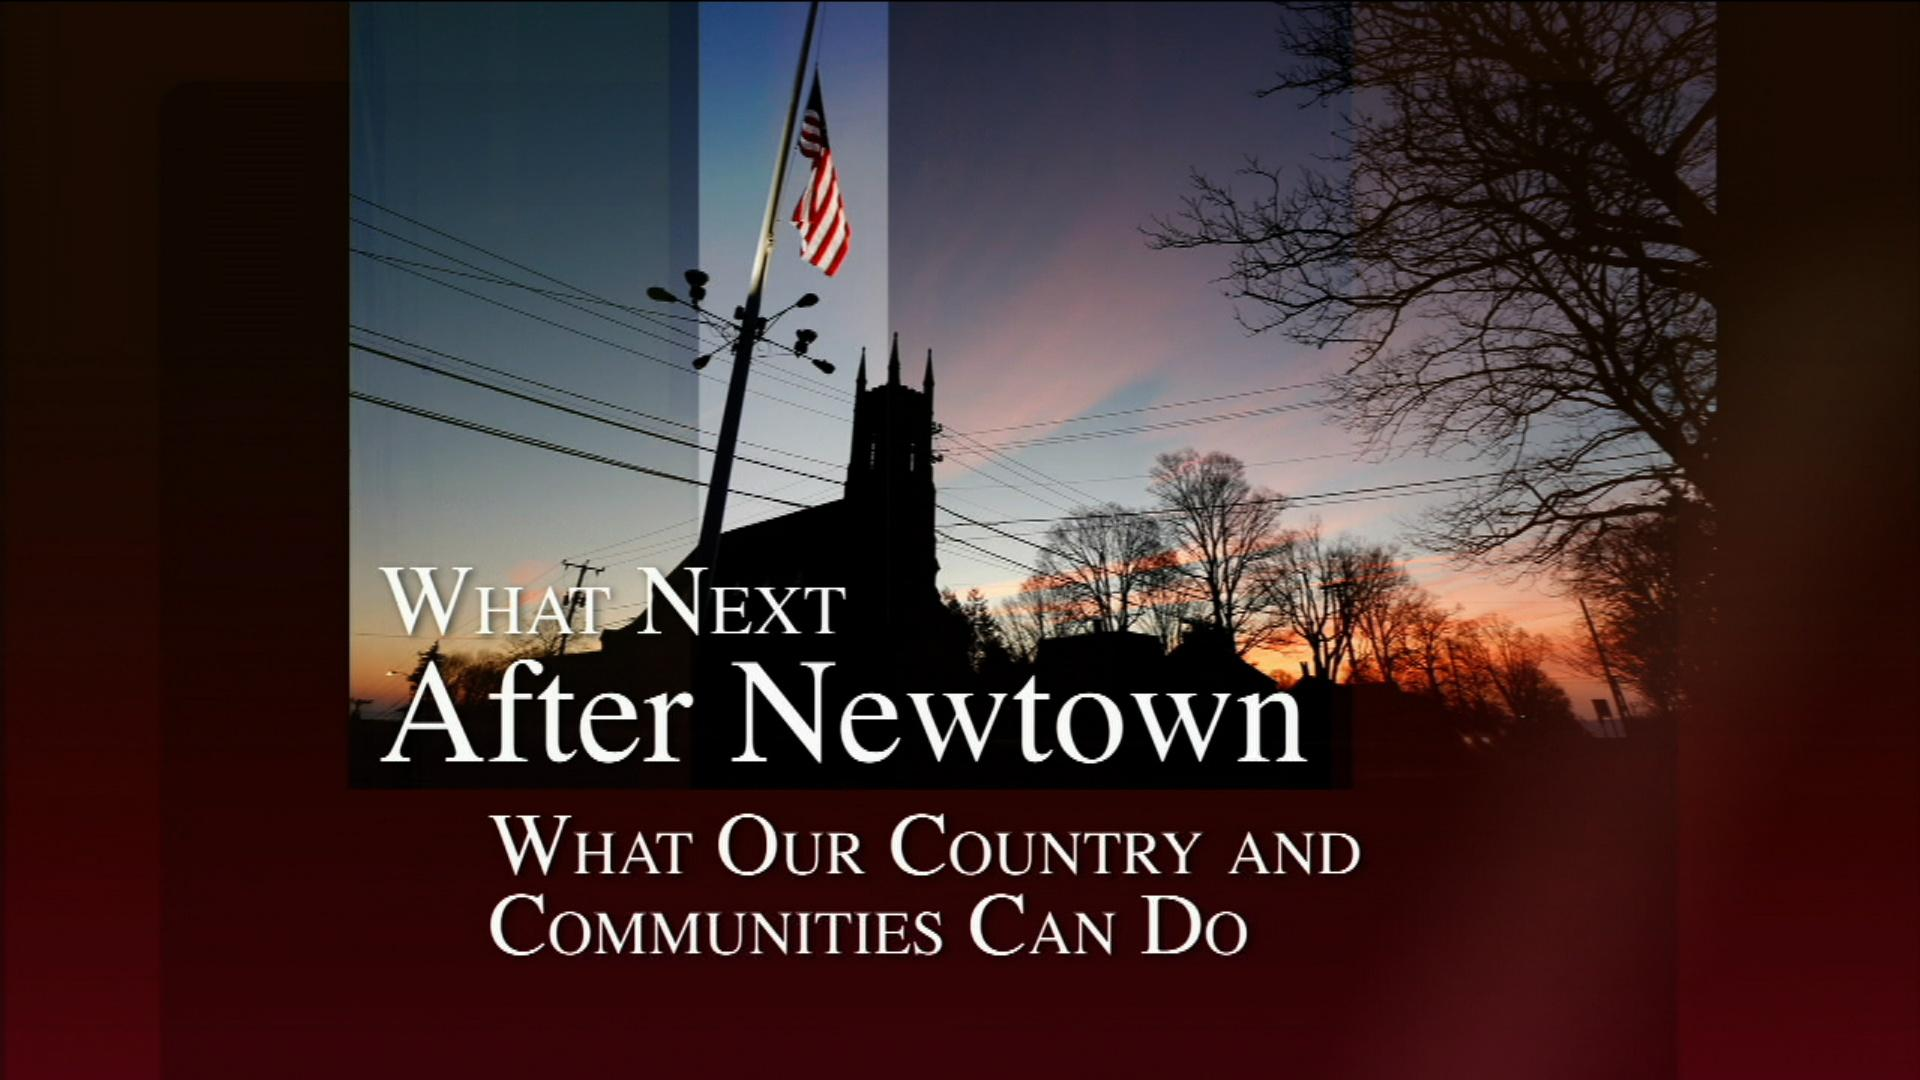 What Next After Newtown image